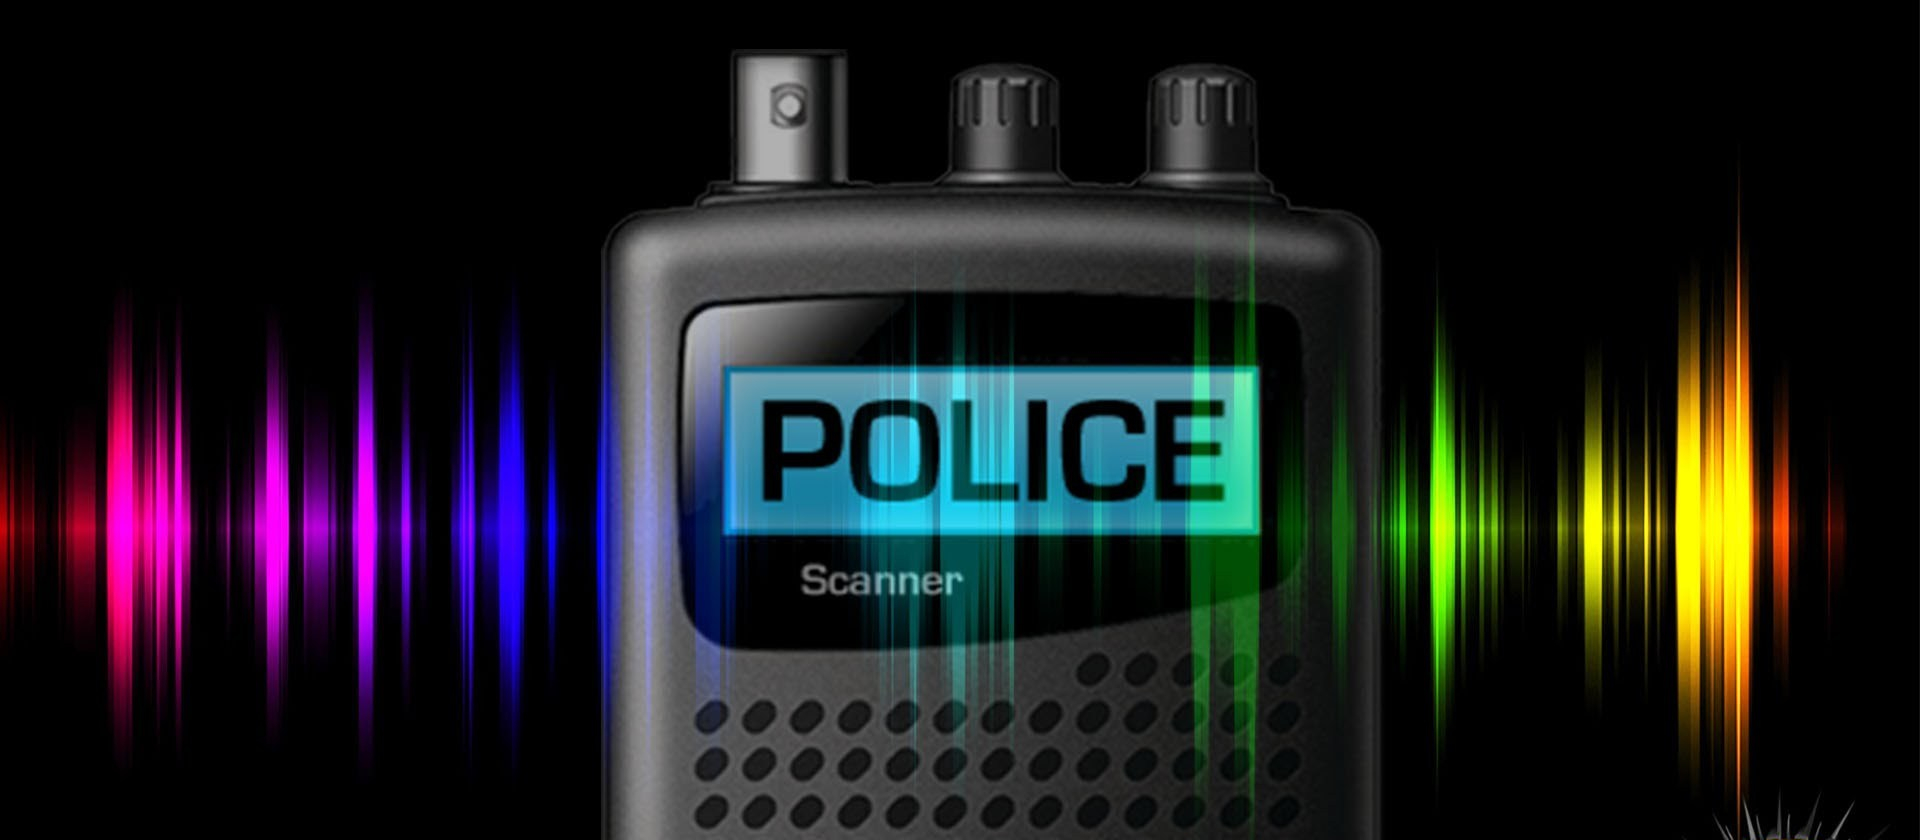 New police policy prevents public from listening to scanner